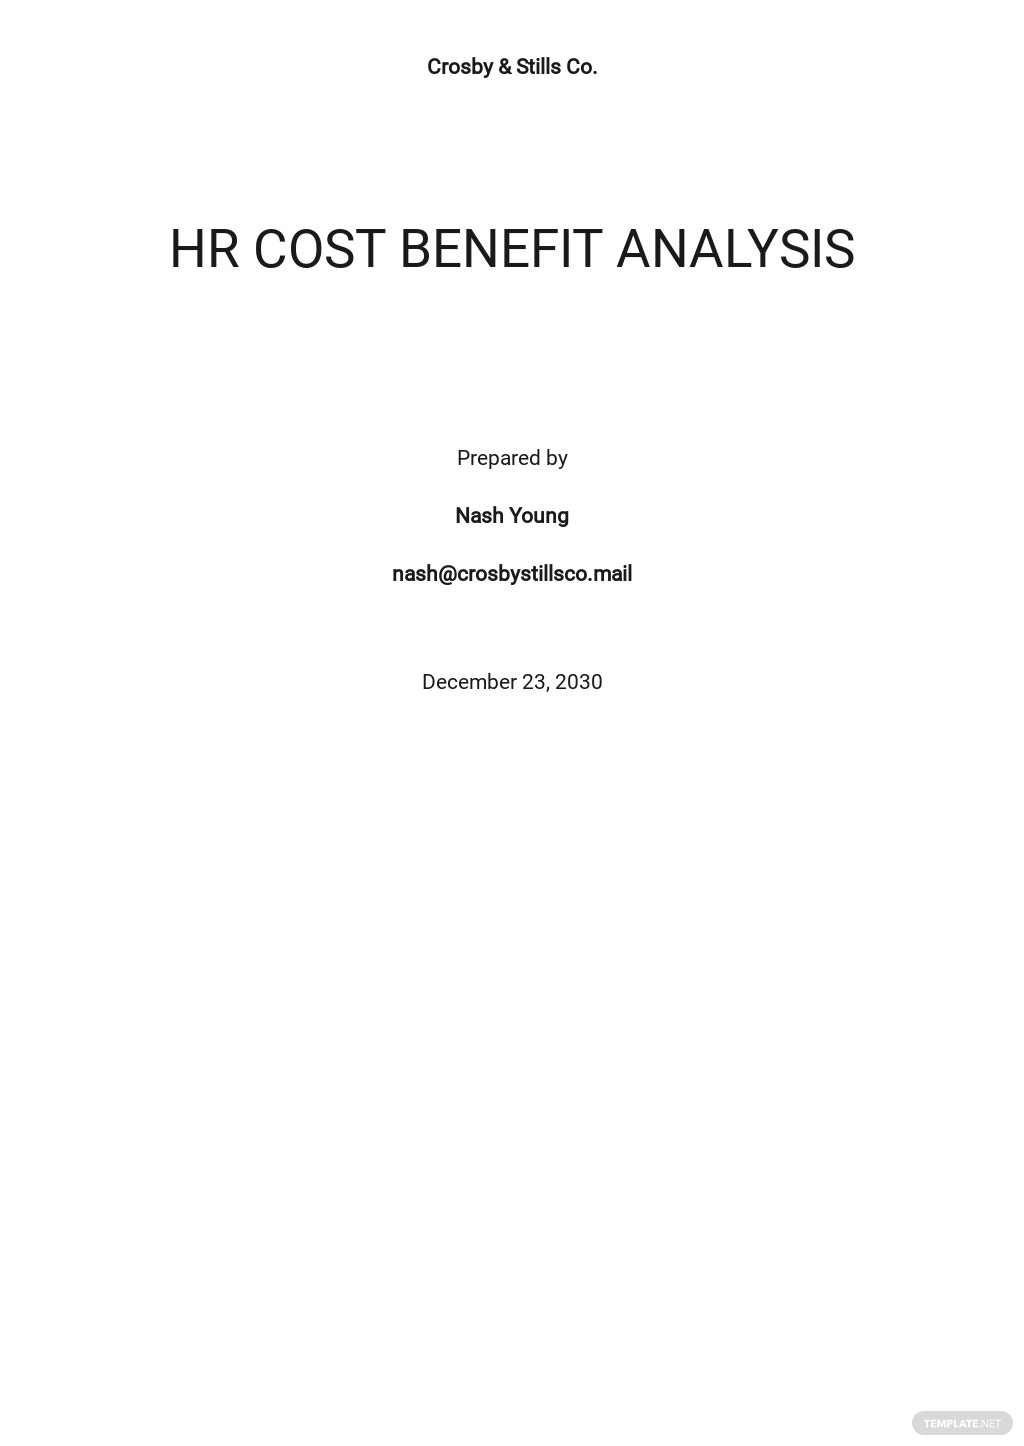 HR Cost Benefit Analysis Template